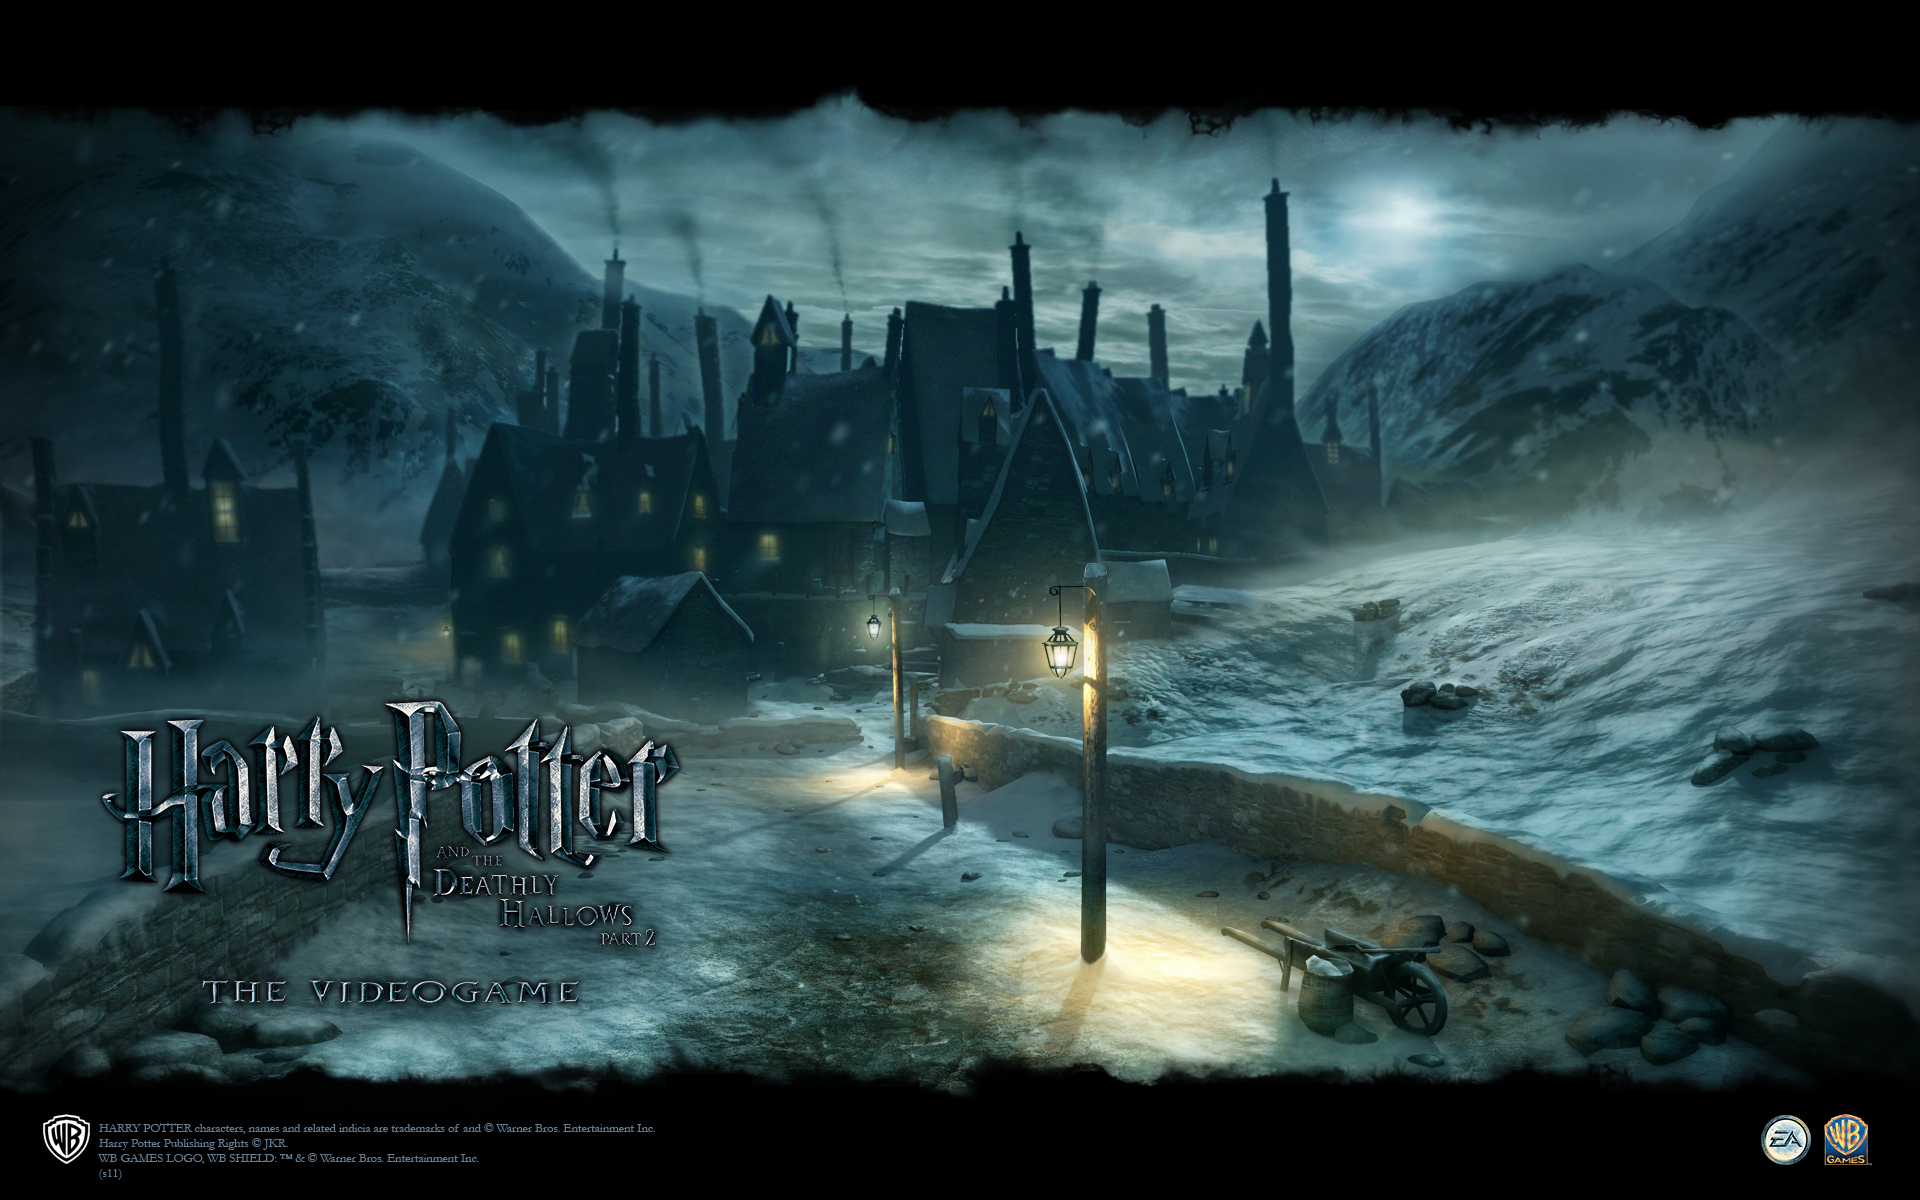 Hogsmeade Wallpaper from Harry Potter and the Deathly Hallows: Part 2 The Video Game